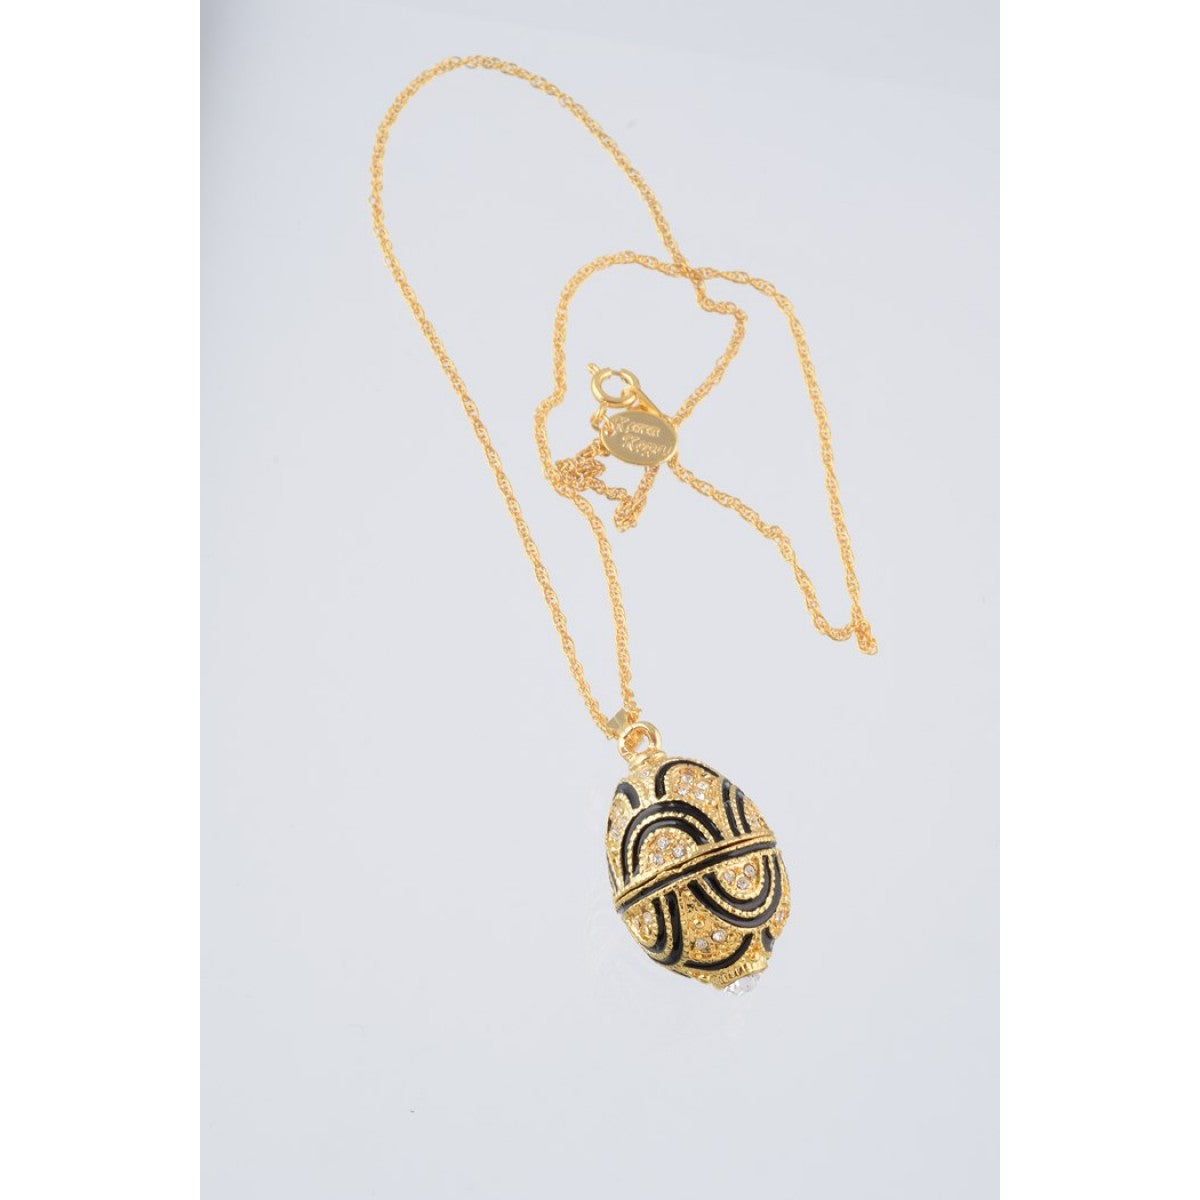 Gold & Black Fabrege Egg Styled Pendant Necklace